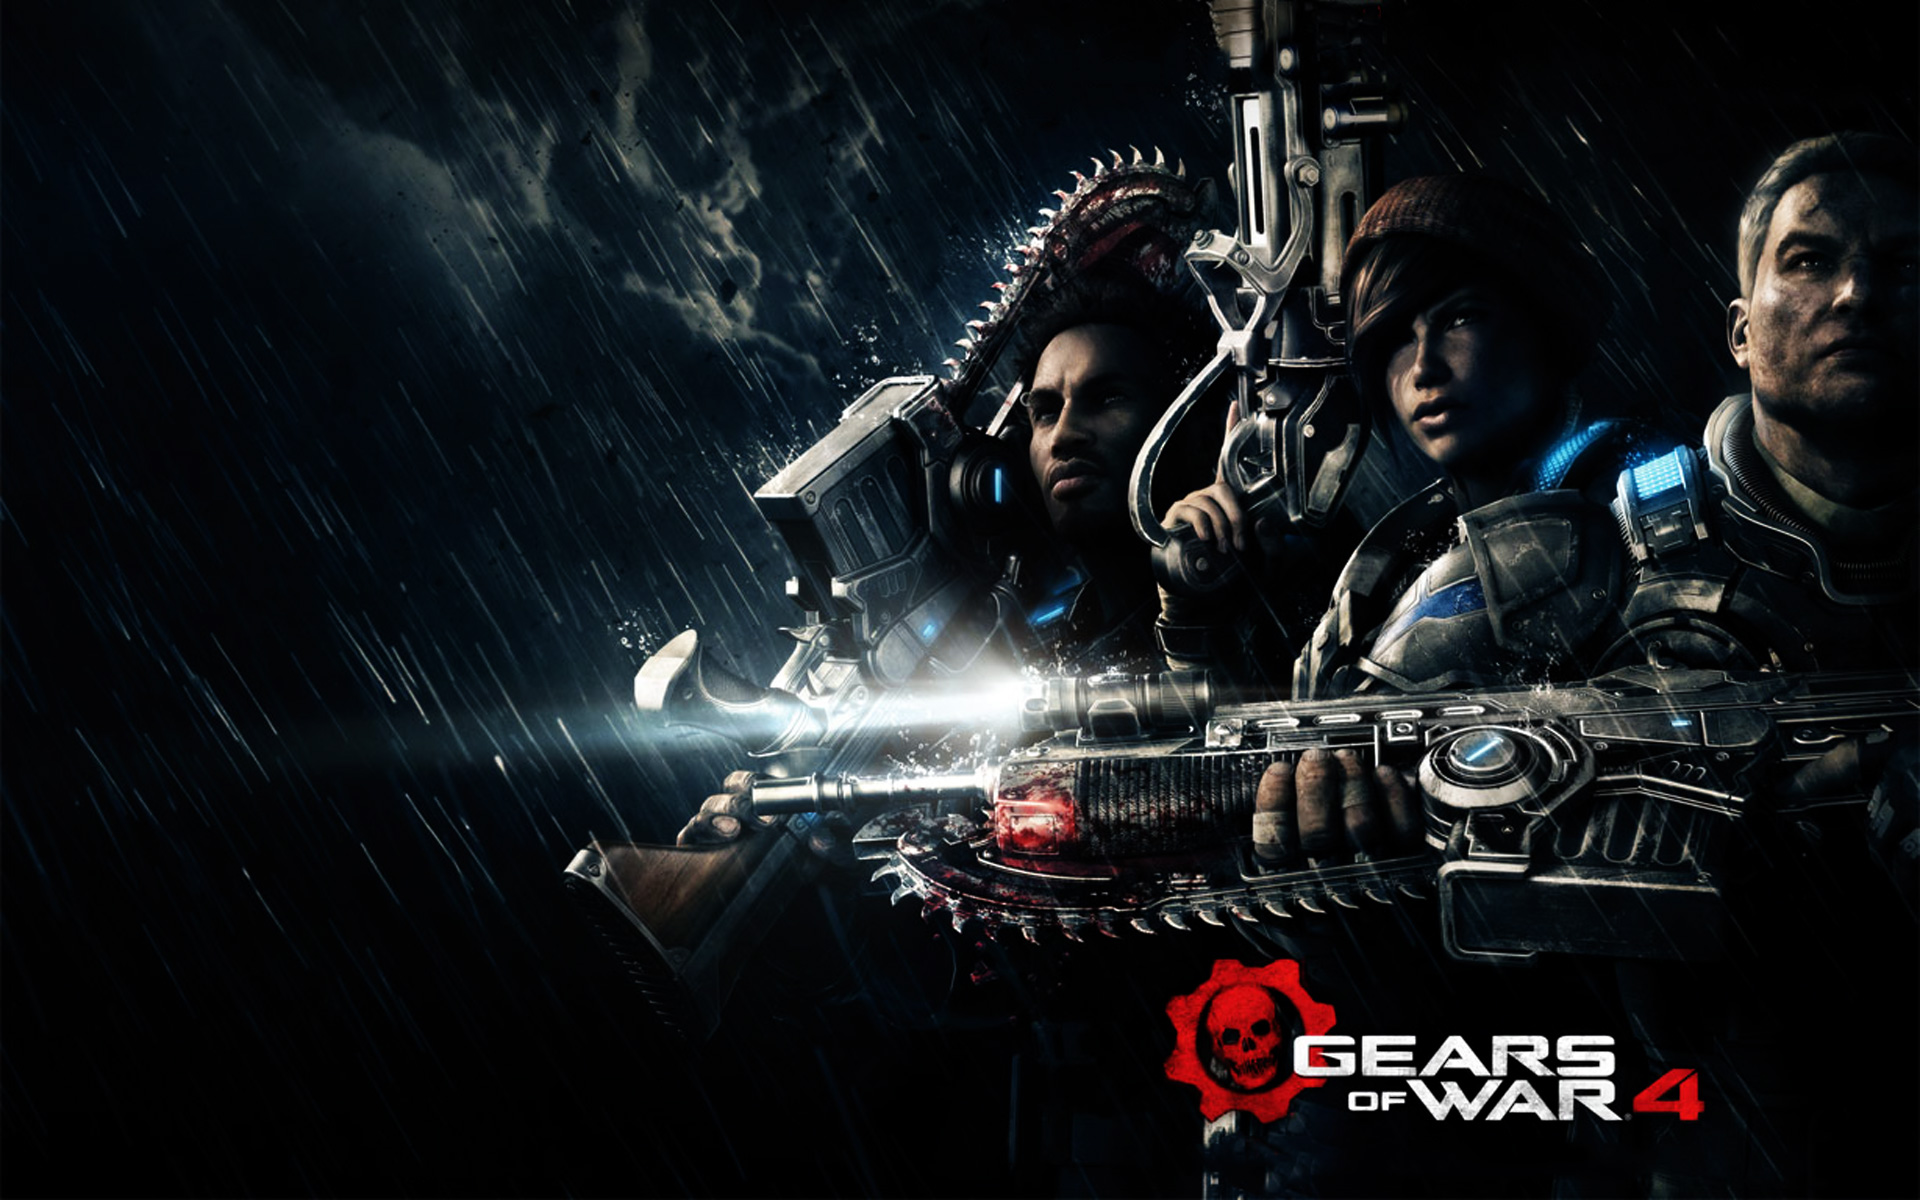 Gears of War 4 Wallpaper in 1920x1200